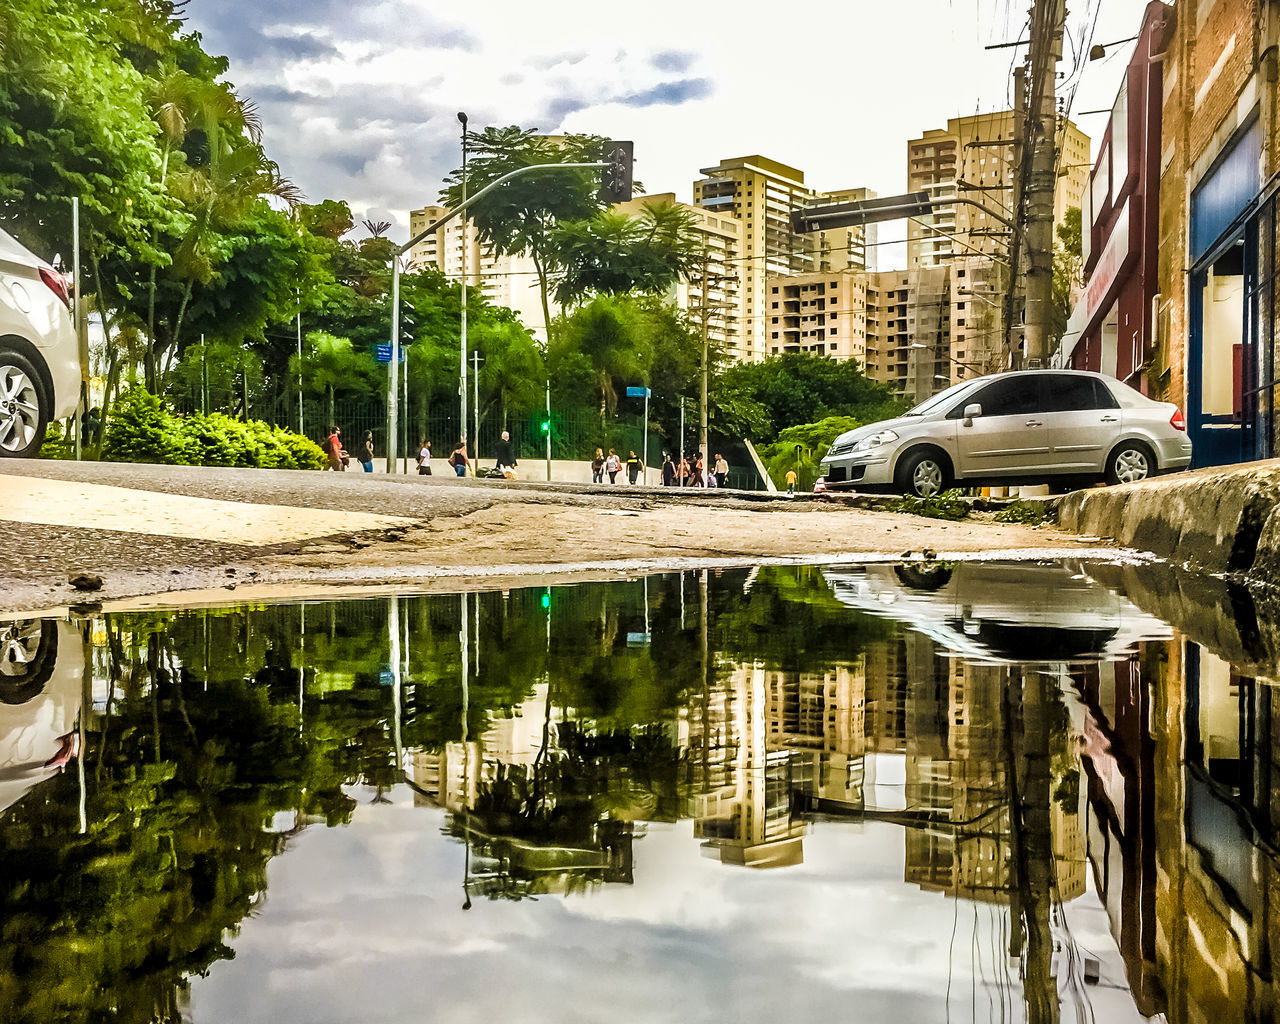 reflection, car, building exterior, transportation, mode of transport, land vehicle, architecture, water, built structure, day, tree, outdoors, sky, cloud - sky, puddle, city, no people